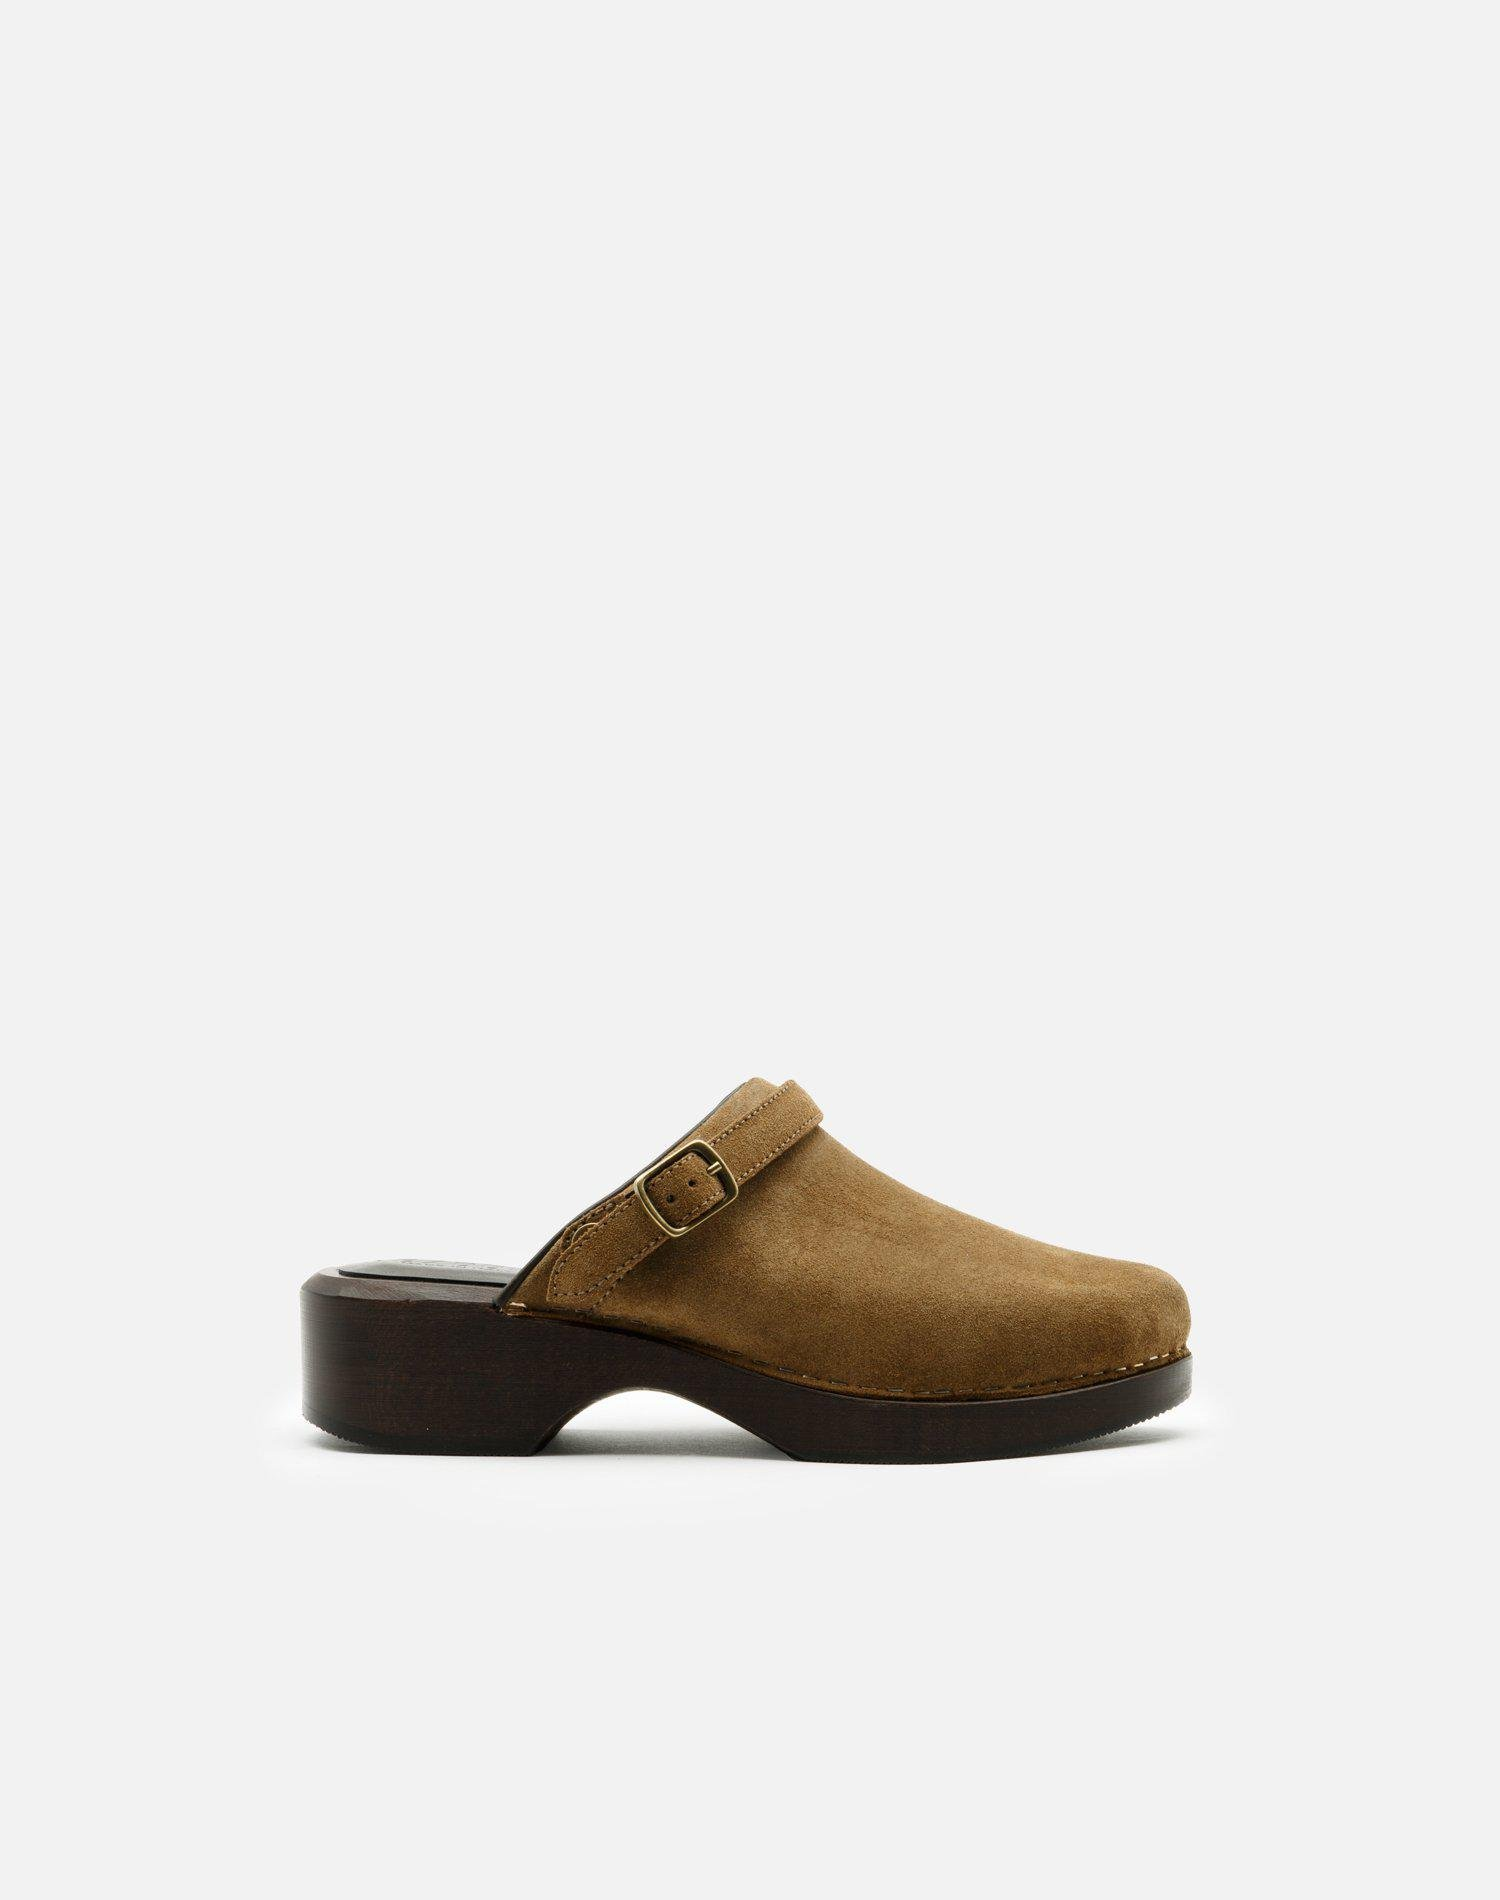 70s Classic Clog - Tan Olive Suede